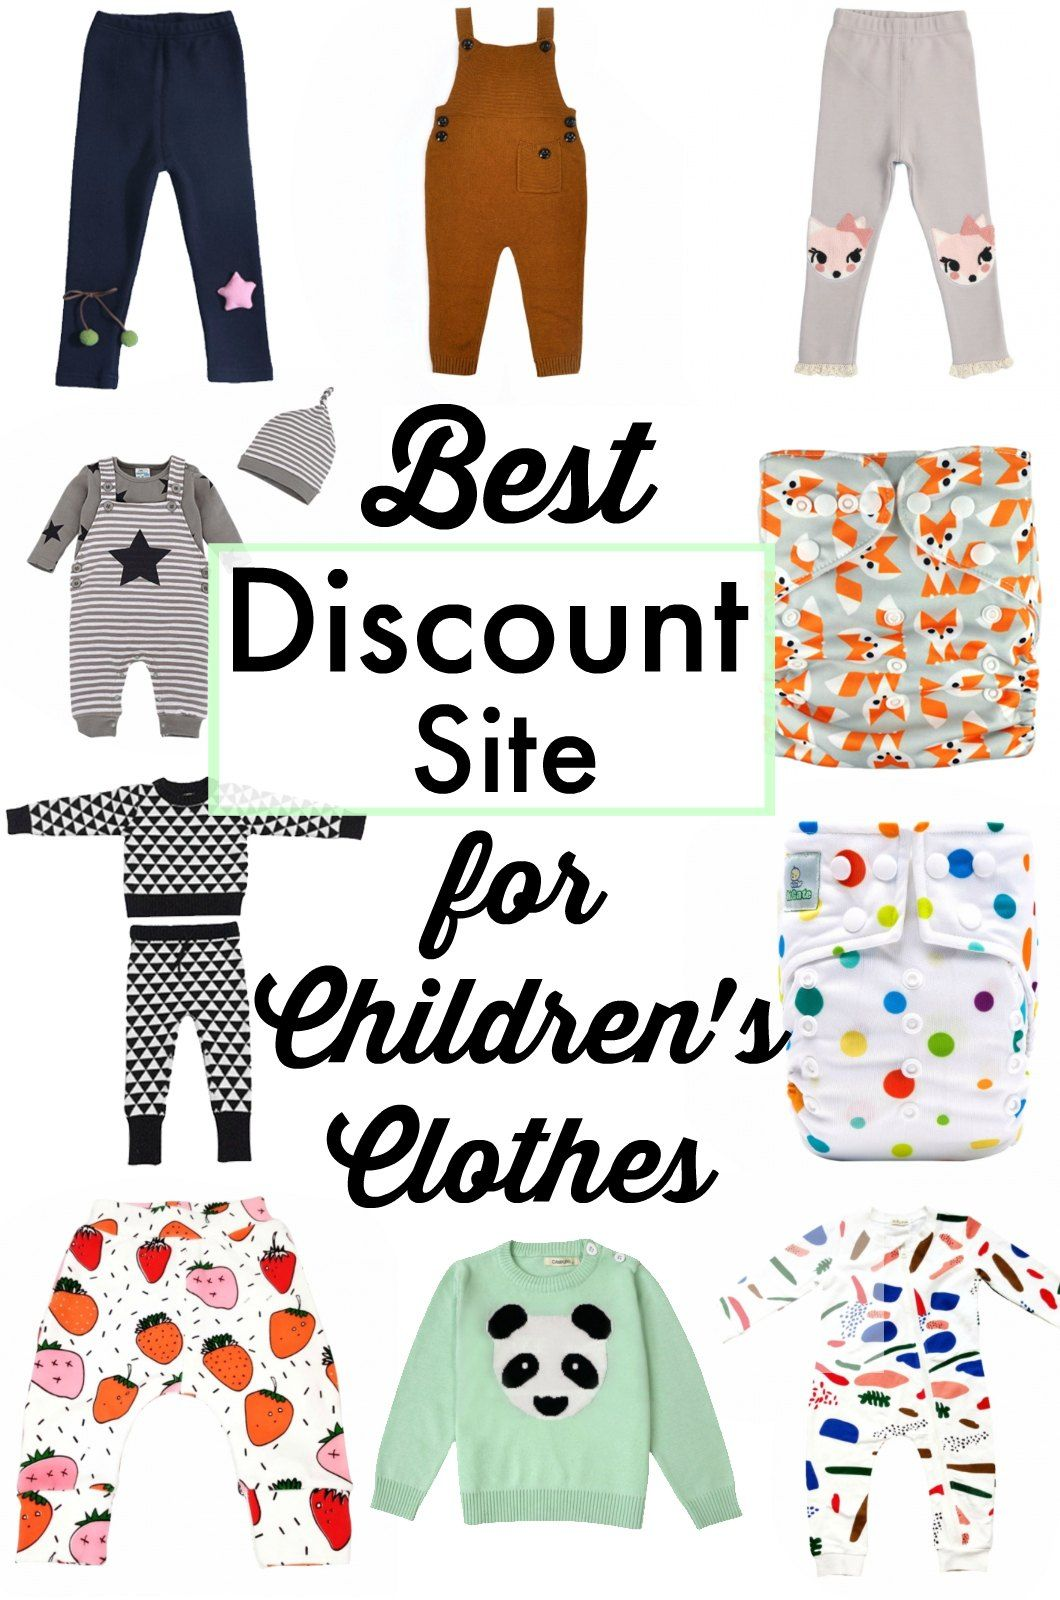 Best Discount Site For Childrens Clothes Happily Hughes